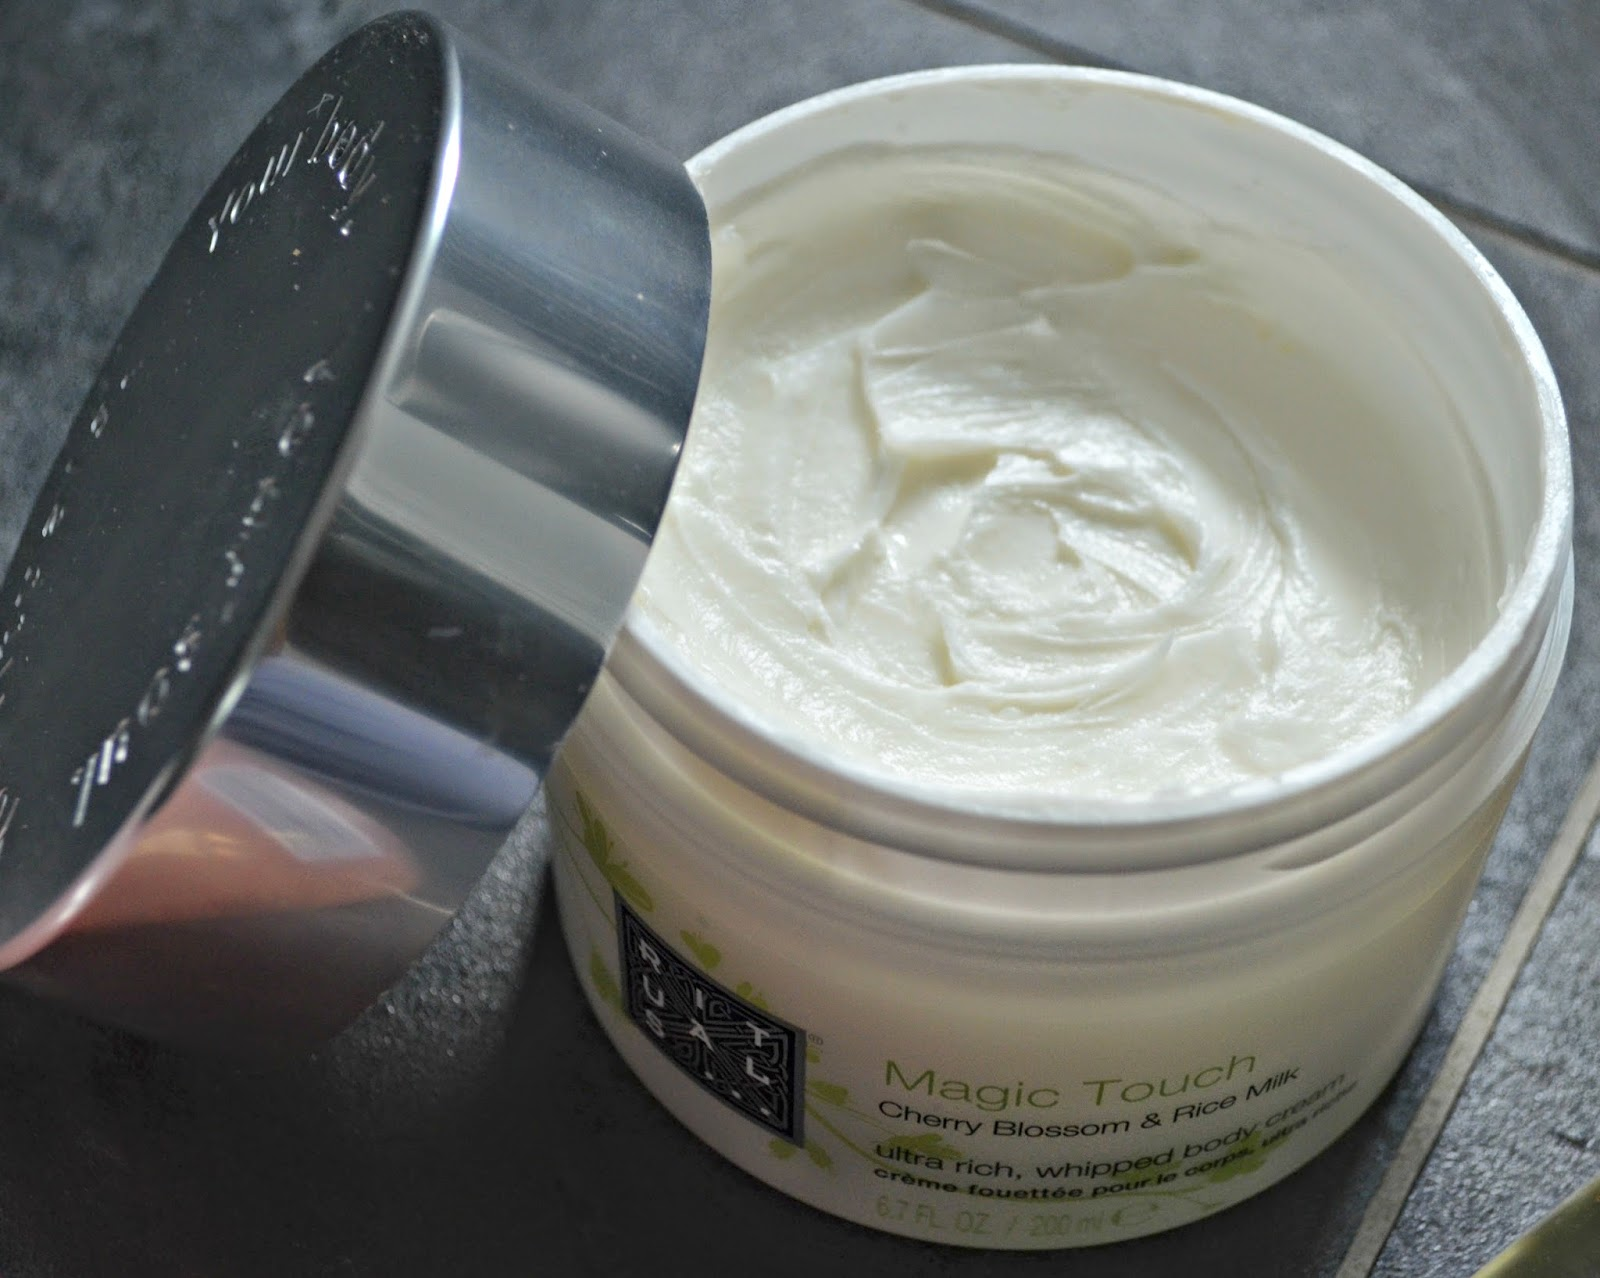 Ritual Magic Touch body cream